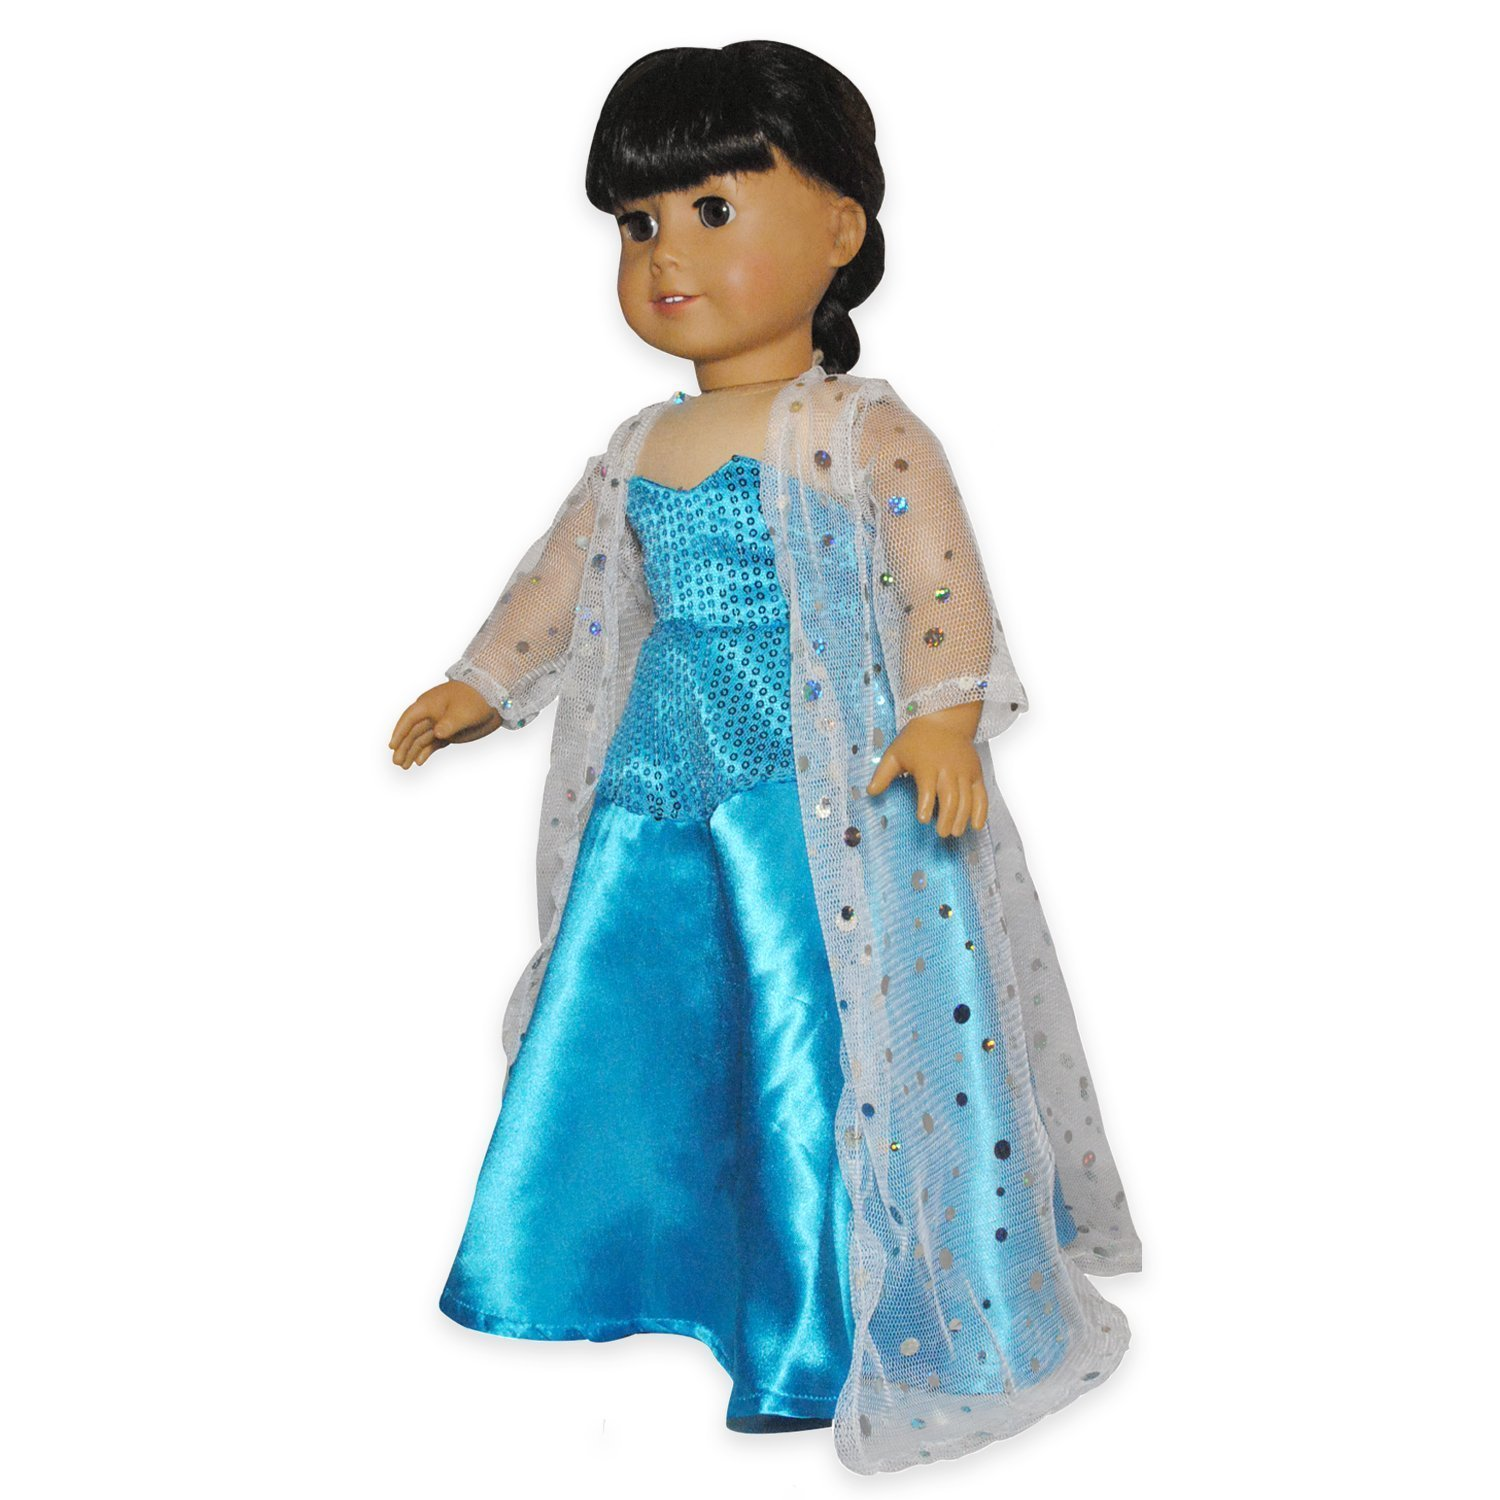 Doll Dress Queen Elsa Inspired Outfit Fits American Girl Doll, My Life Doll, Our... by Pink Butterfly Closet